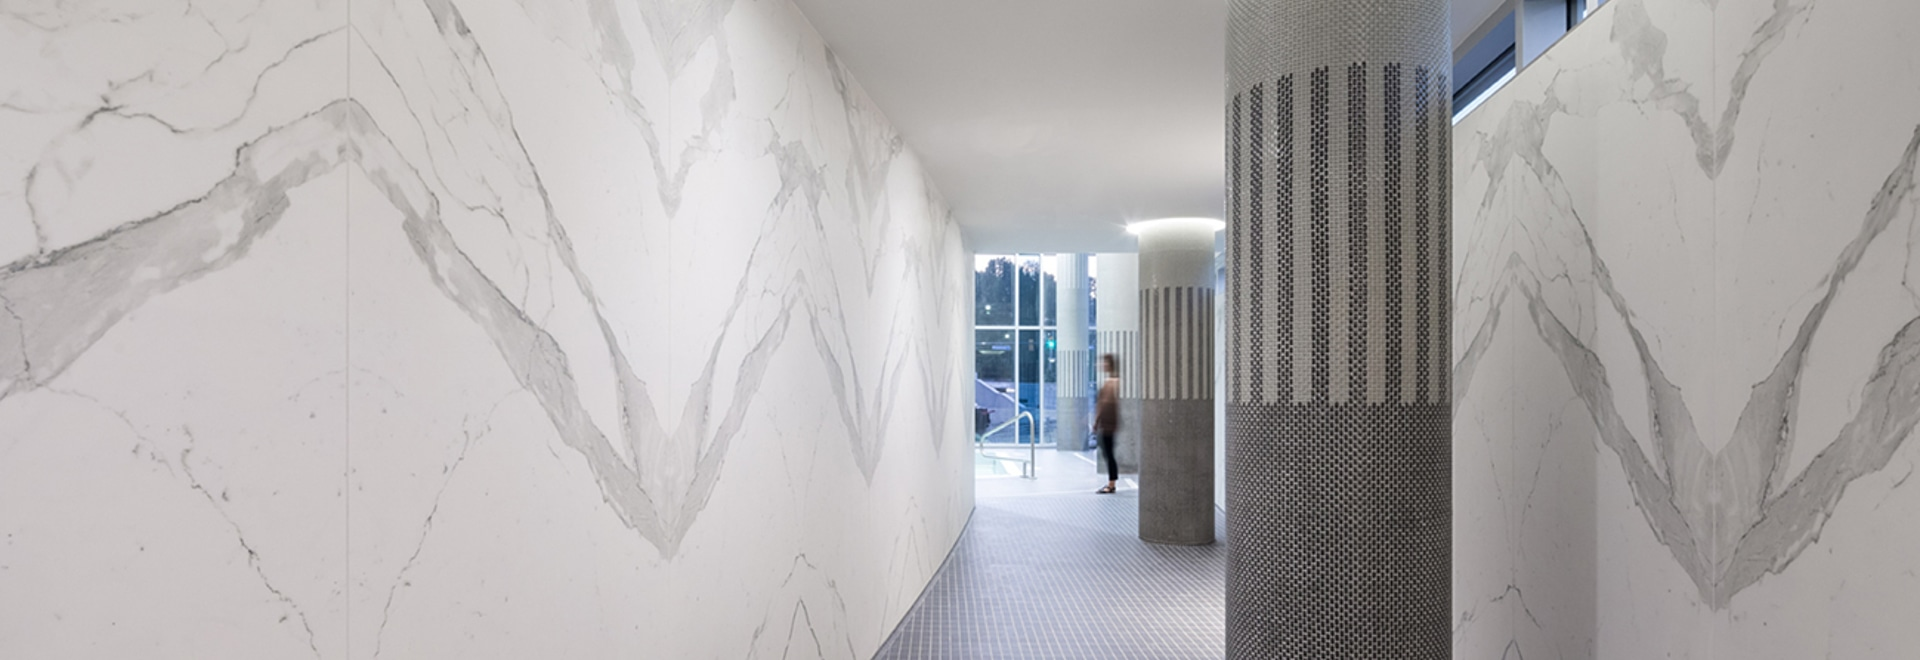 LAMINAM FOR THE WELLNESS SCENARIOS